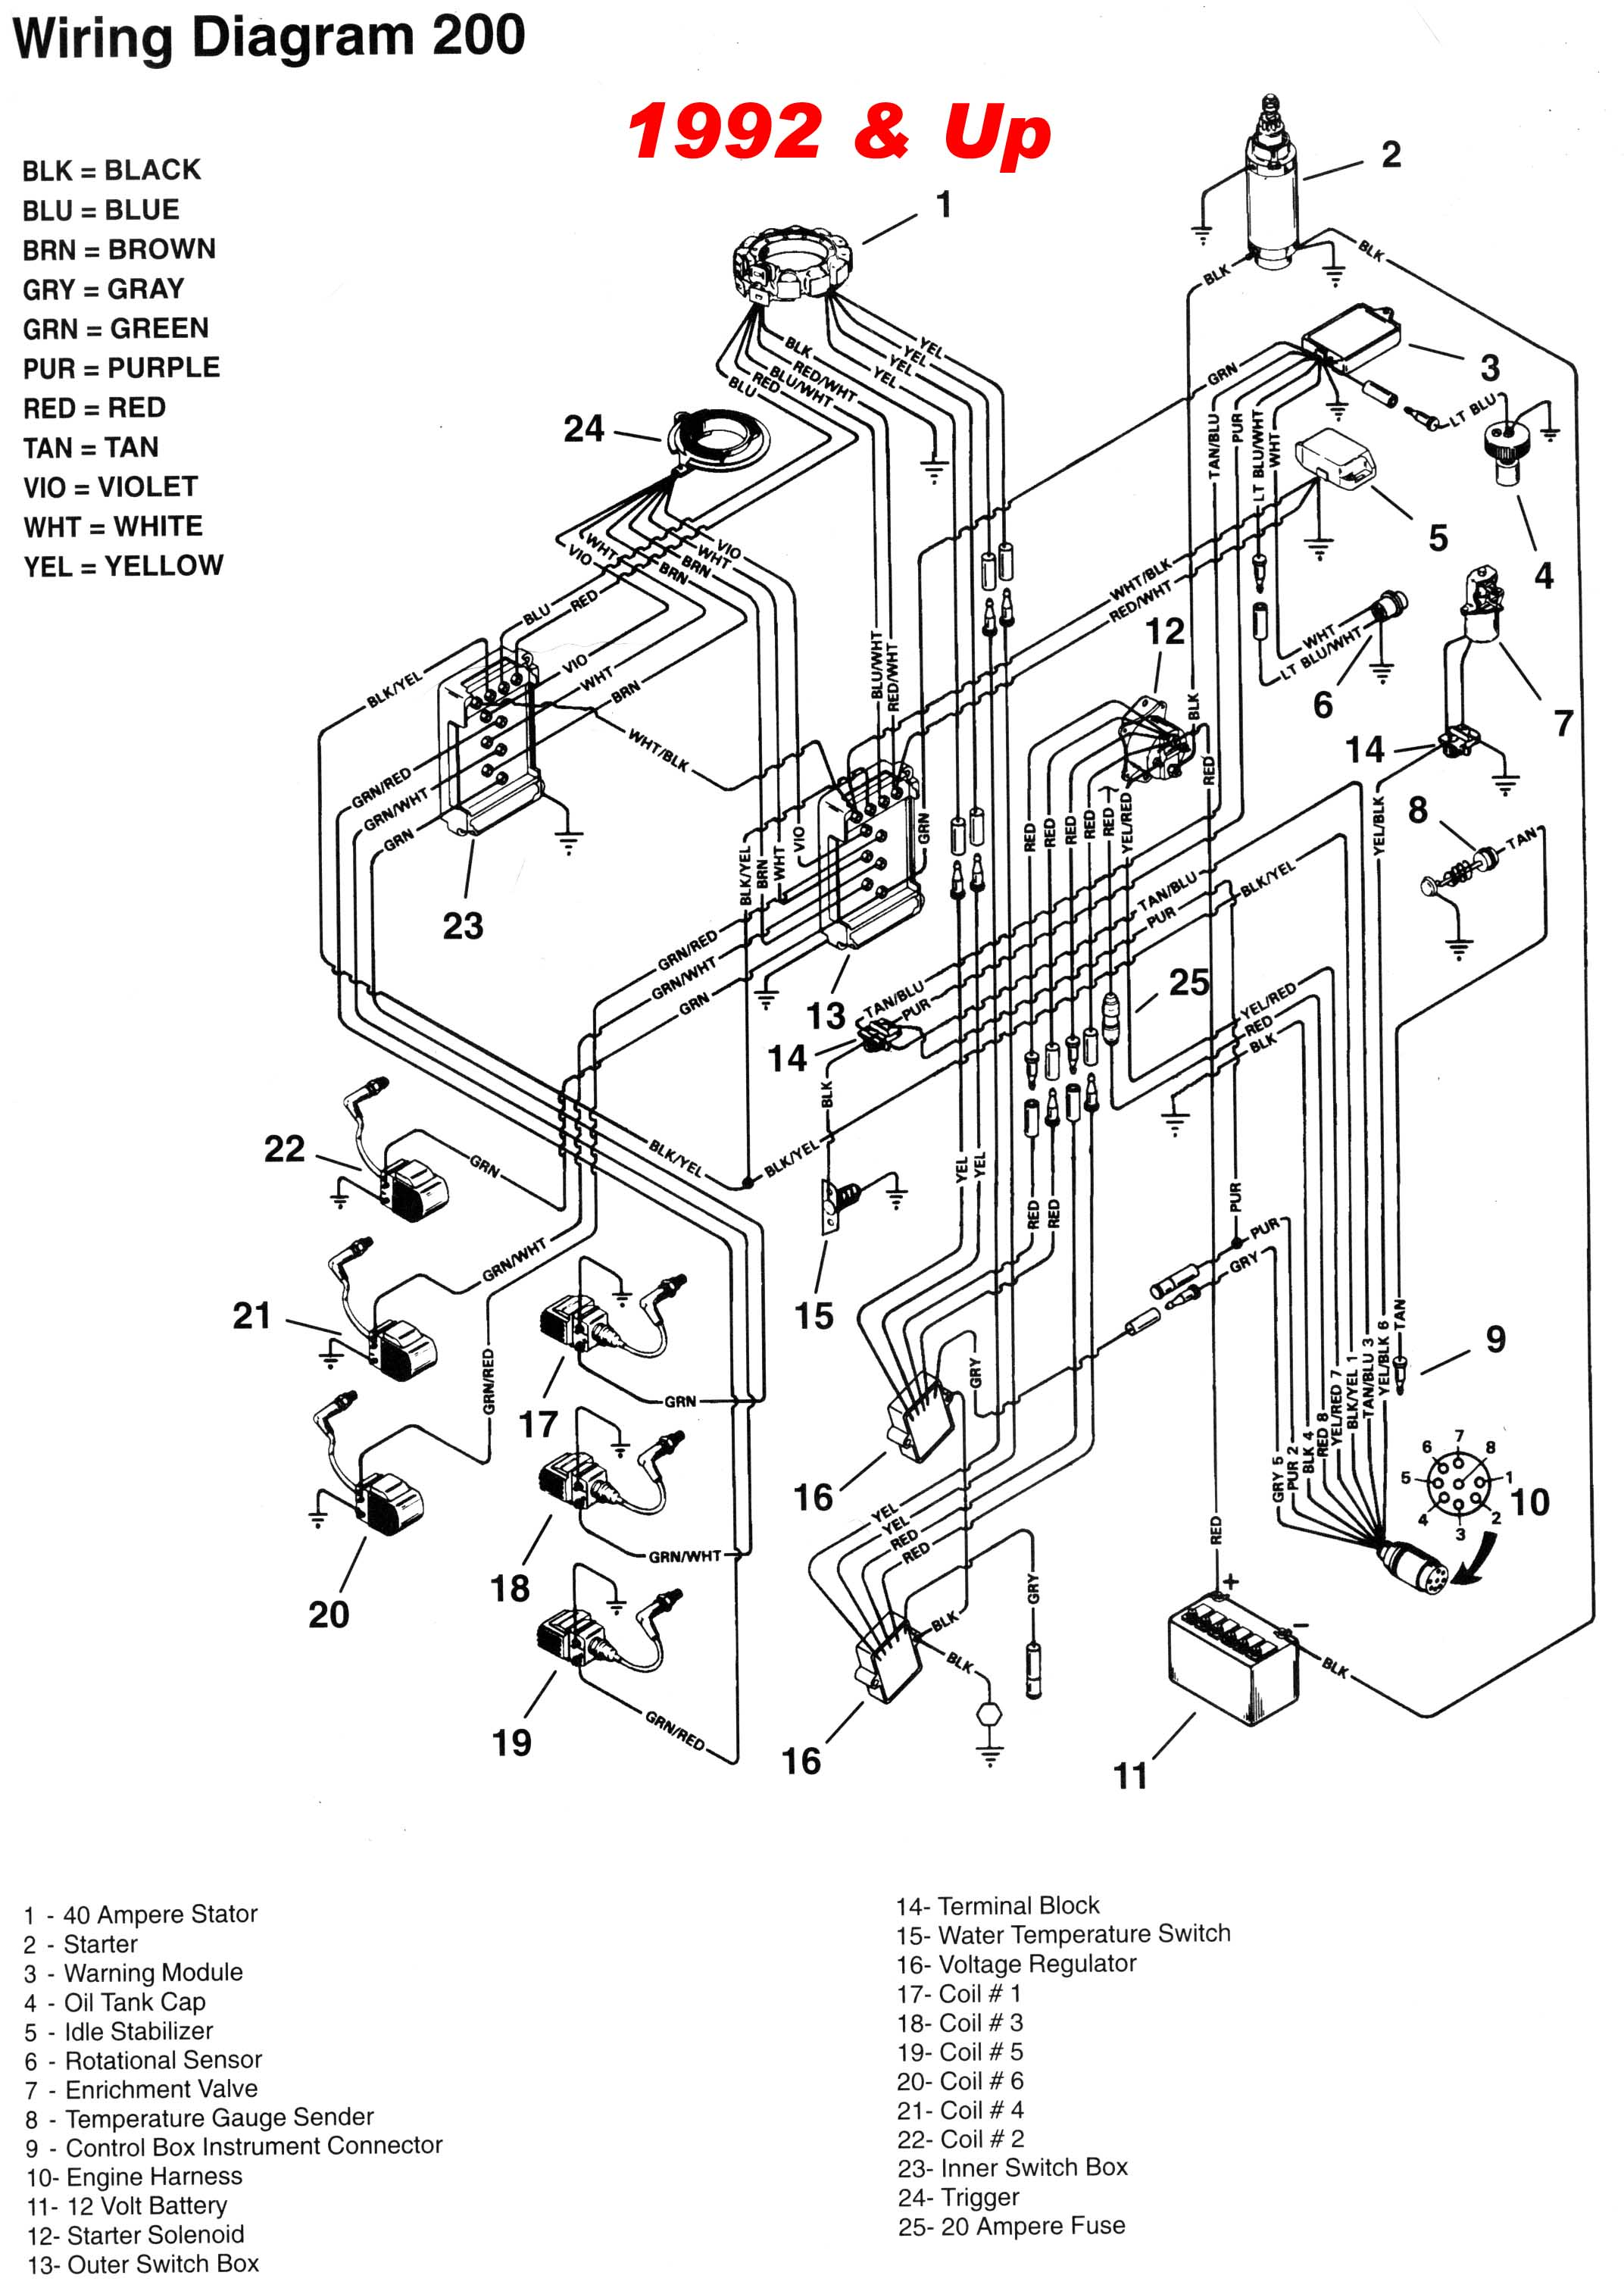 1995 evinrude wiring diagram pdf with Yamaha Outboard Wiring Harness Diagram Yamaha Outboard Engine To Ignition Switch Wiring Diagrams Source Yamaha Outboard Wiring Harness Diagram Readingrat   Within Wire on Honda 1978 Outboard Repair Service Manual also Wiring Harness Diagram Mercruiser V 8 furthermore Johnson 25 Hp Electric Start Wiring Diagram 1992 moreover Marine Ignition Switch Wiring Diagram Mercruiser Interrupter additionally 85 Hp Johnson Outboard Motor Wiring Diagram.